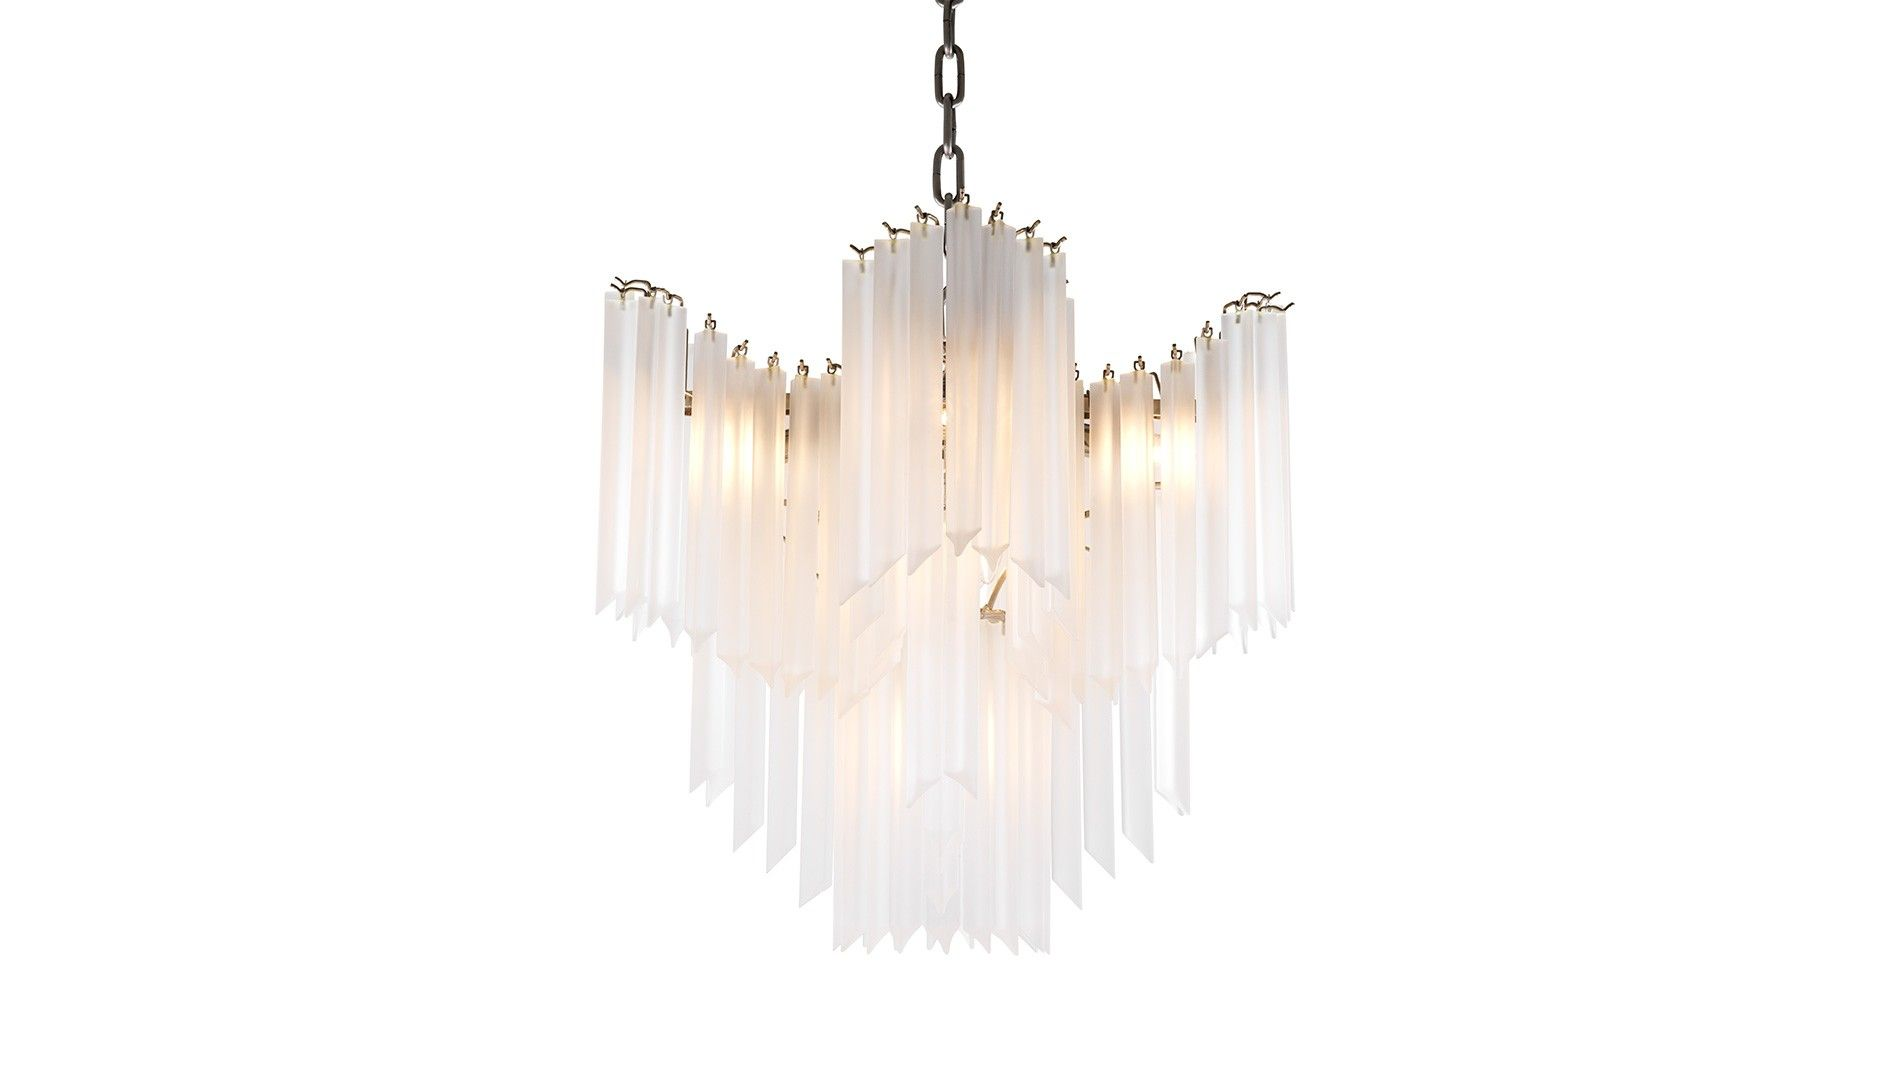 Pulsar chandelier chandeliers online chandeliers and free uk buy eichholtz pulsar chandelier online at luxdeco discover luxury collections from the worlds arubaitofo Choice Image